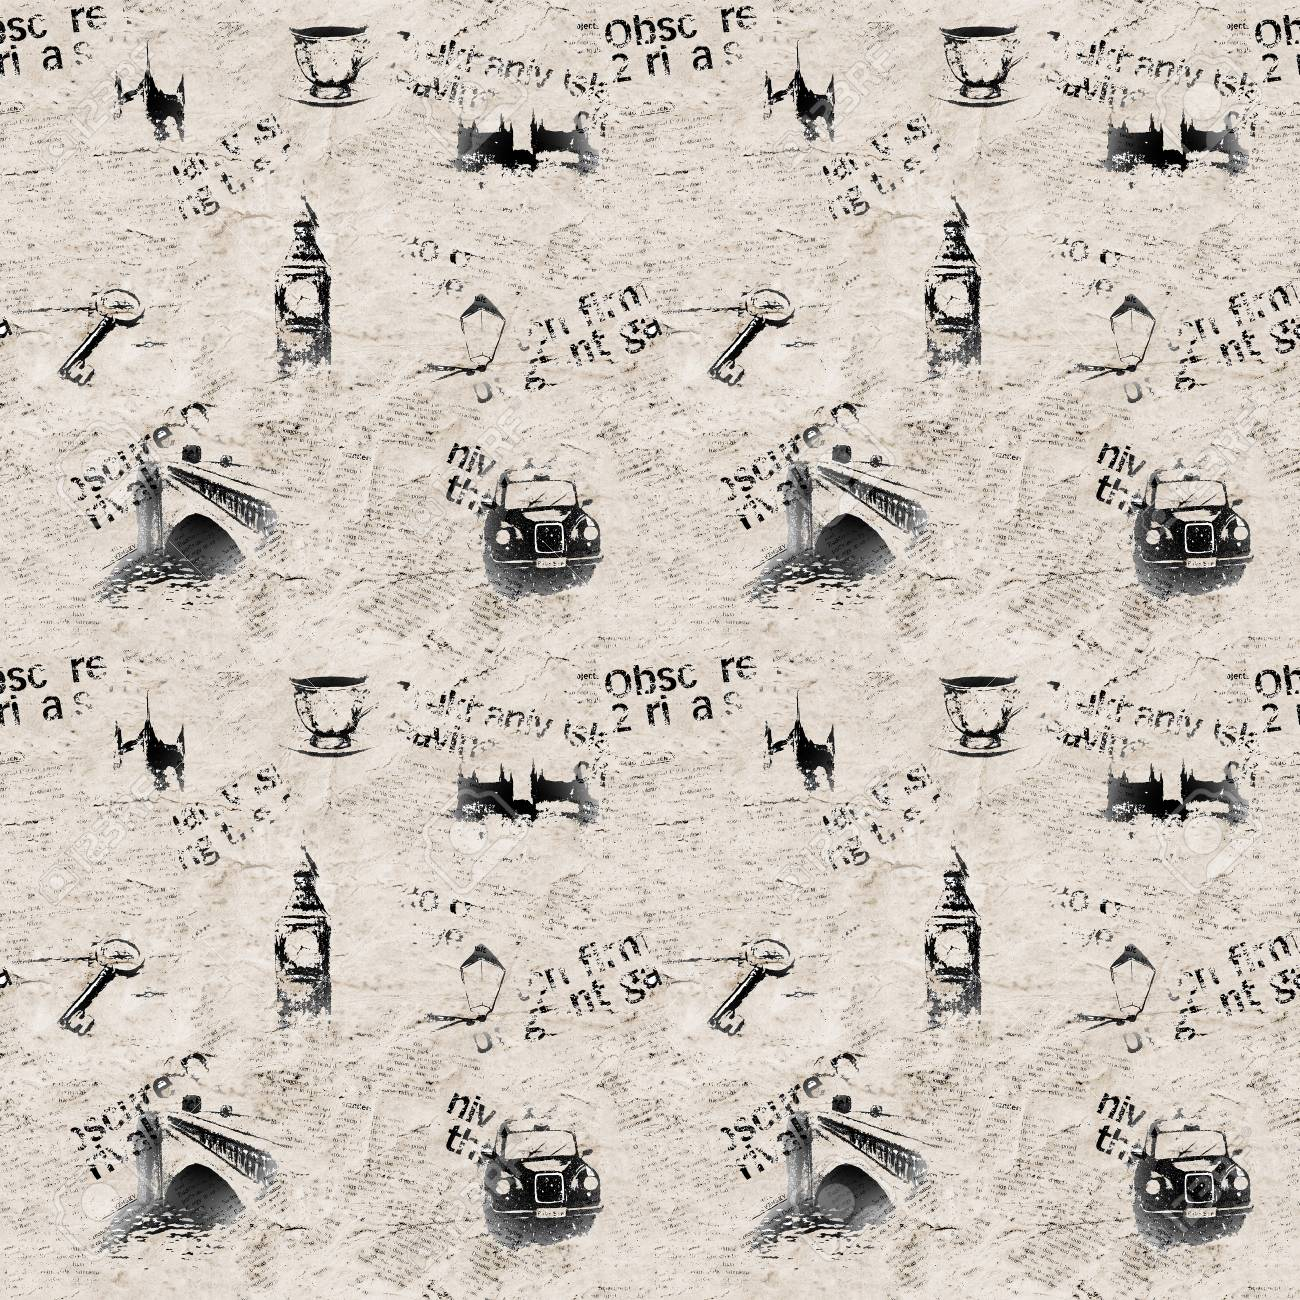 Vintage Black And White Newspaper London Grunge Background Seamless